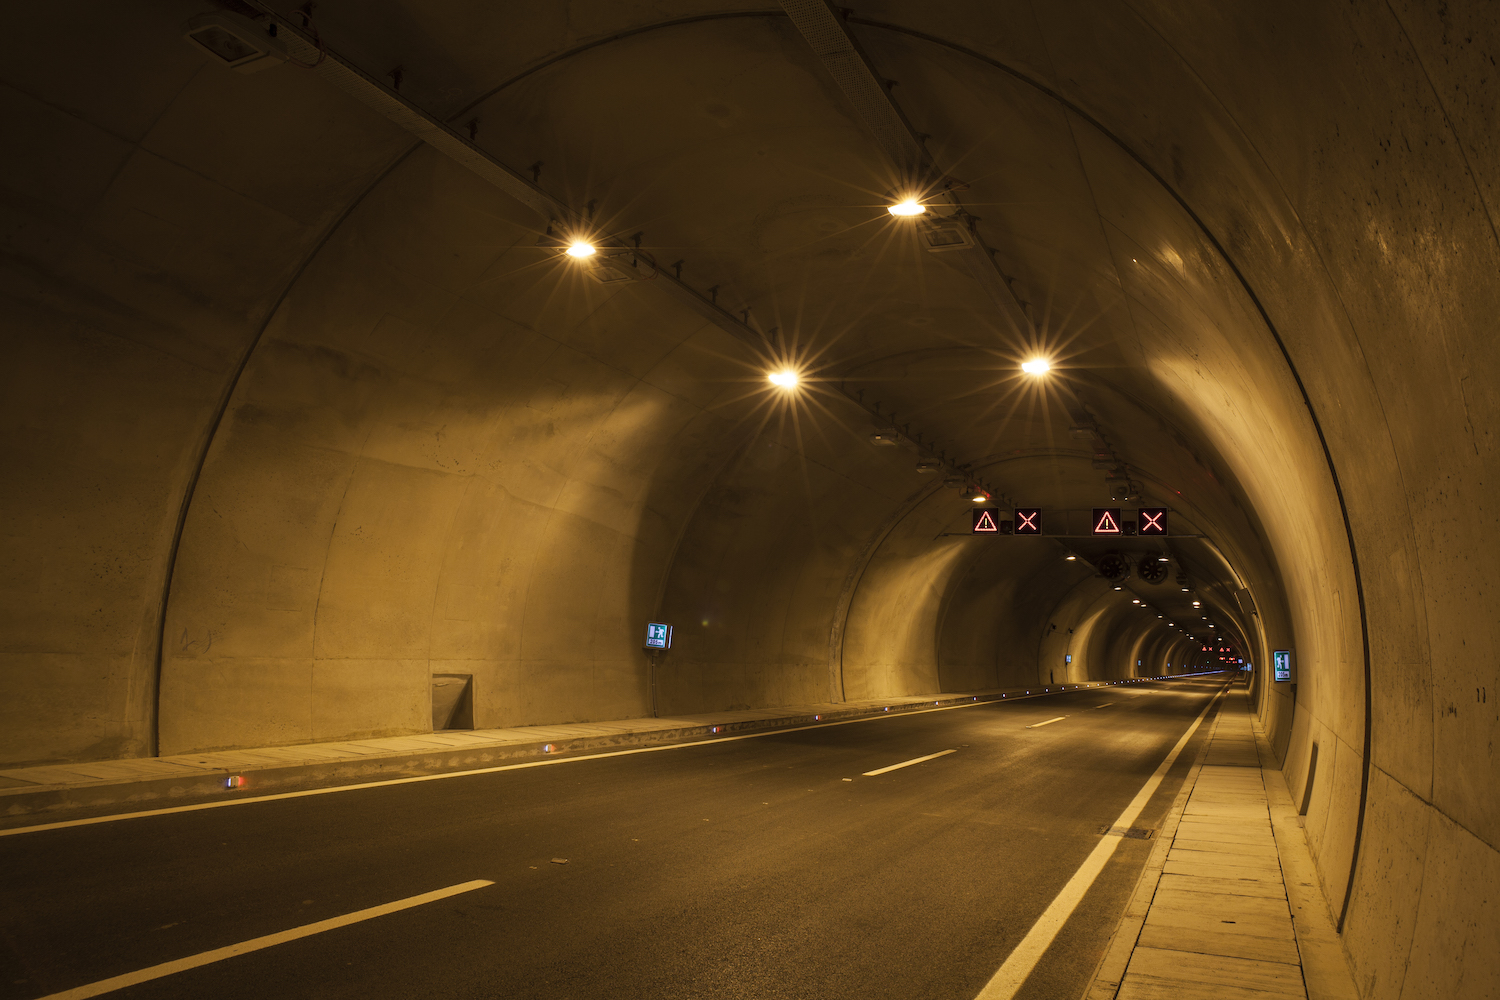 Tunnels which never see the light of day